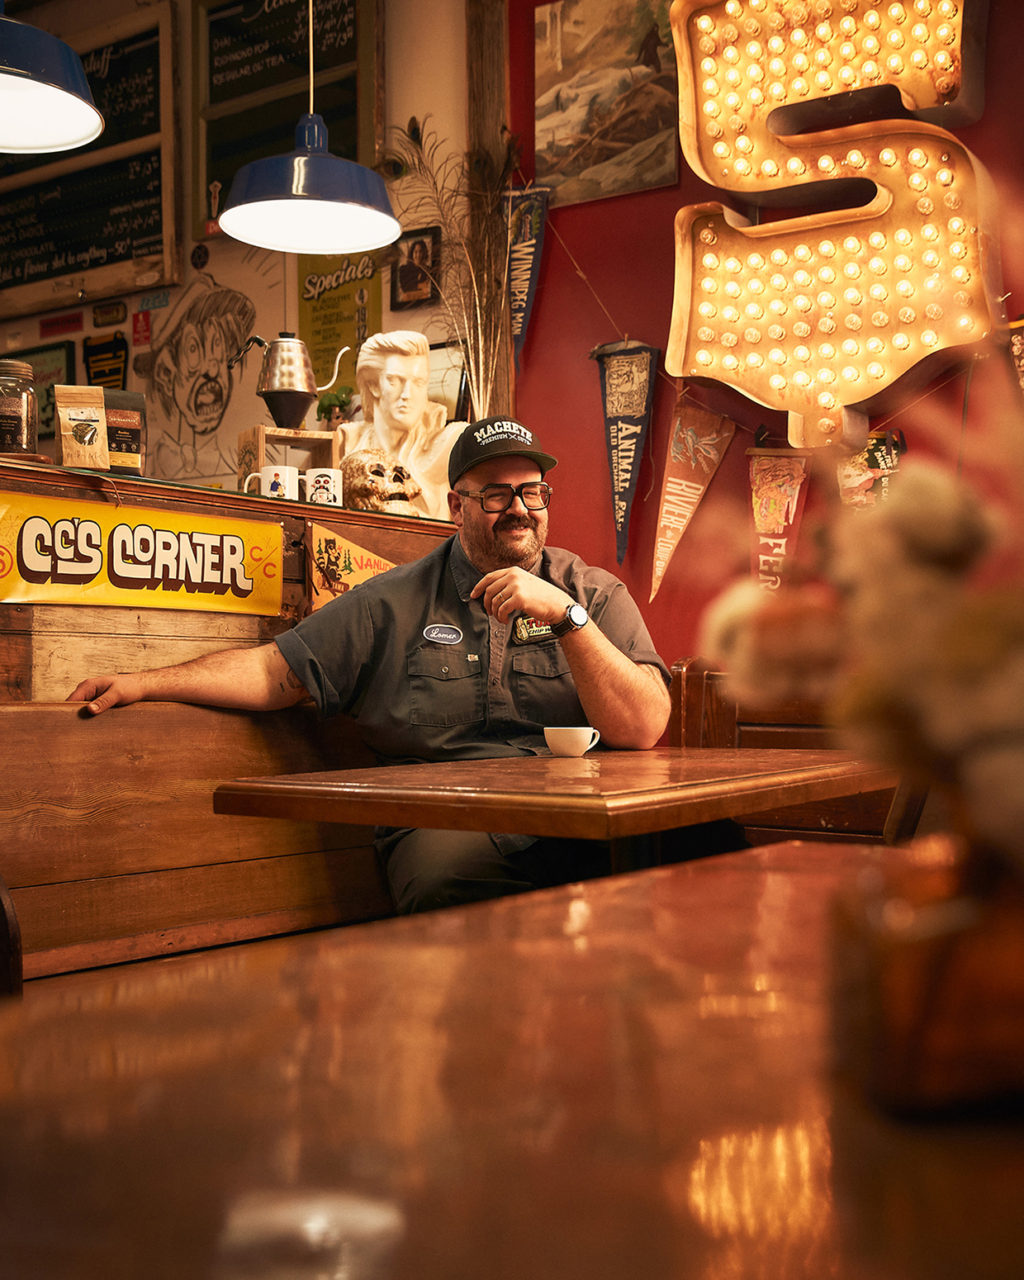 This is a magazine cover shot by Ottawa  Editorial  photographer Matthew Liteplo for a local food magazine Edible Ottawa. This editorial portrait was taken in Richmond Ontario a close town to Ottawa and Perth. The concept behind the portrait is to capture the oddities and interesting pieces of brick a brack that are hanging in the cafe.  As an editorial photographer, matthew liteplo works to create interesting character portraits. With limited content usage, is can be used for online editions as well as social media.